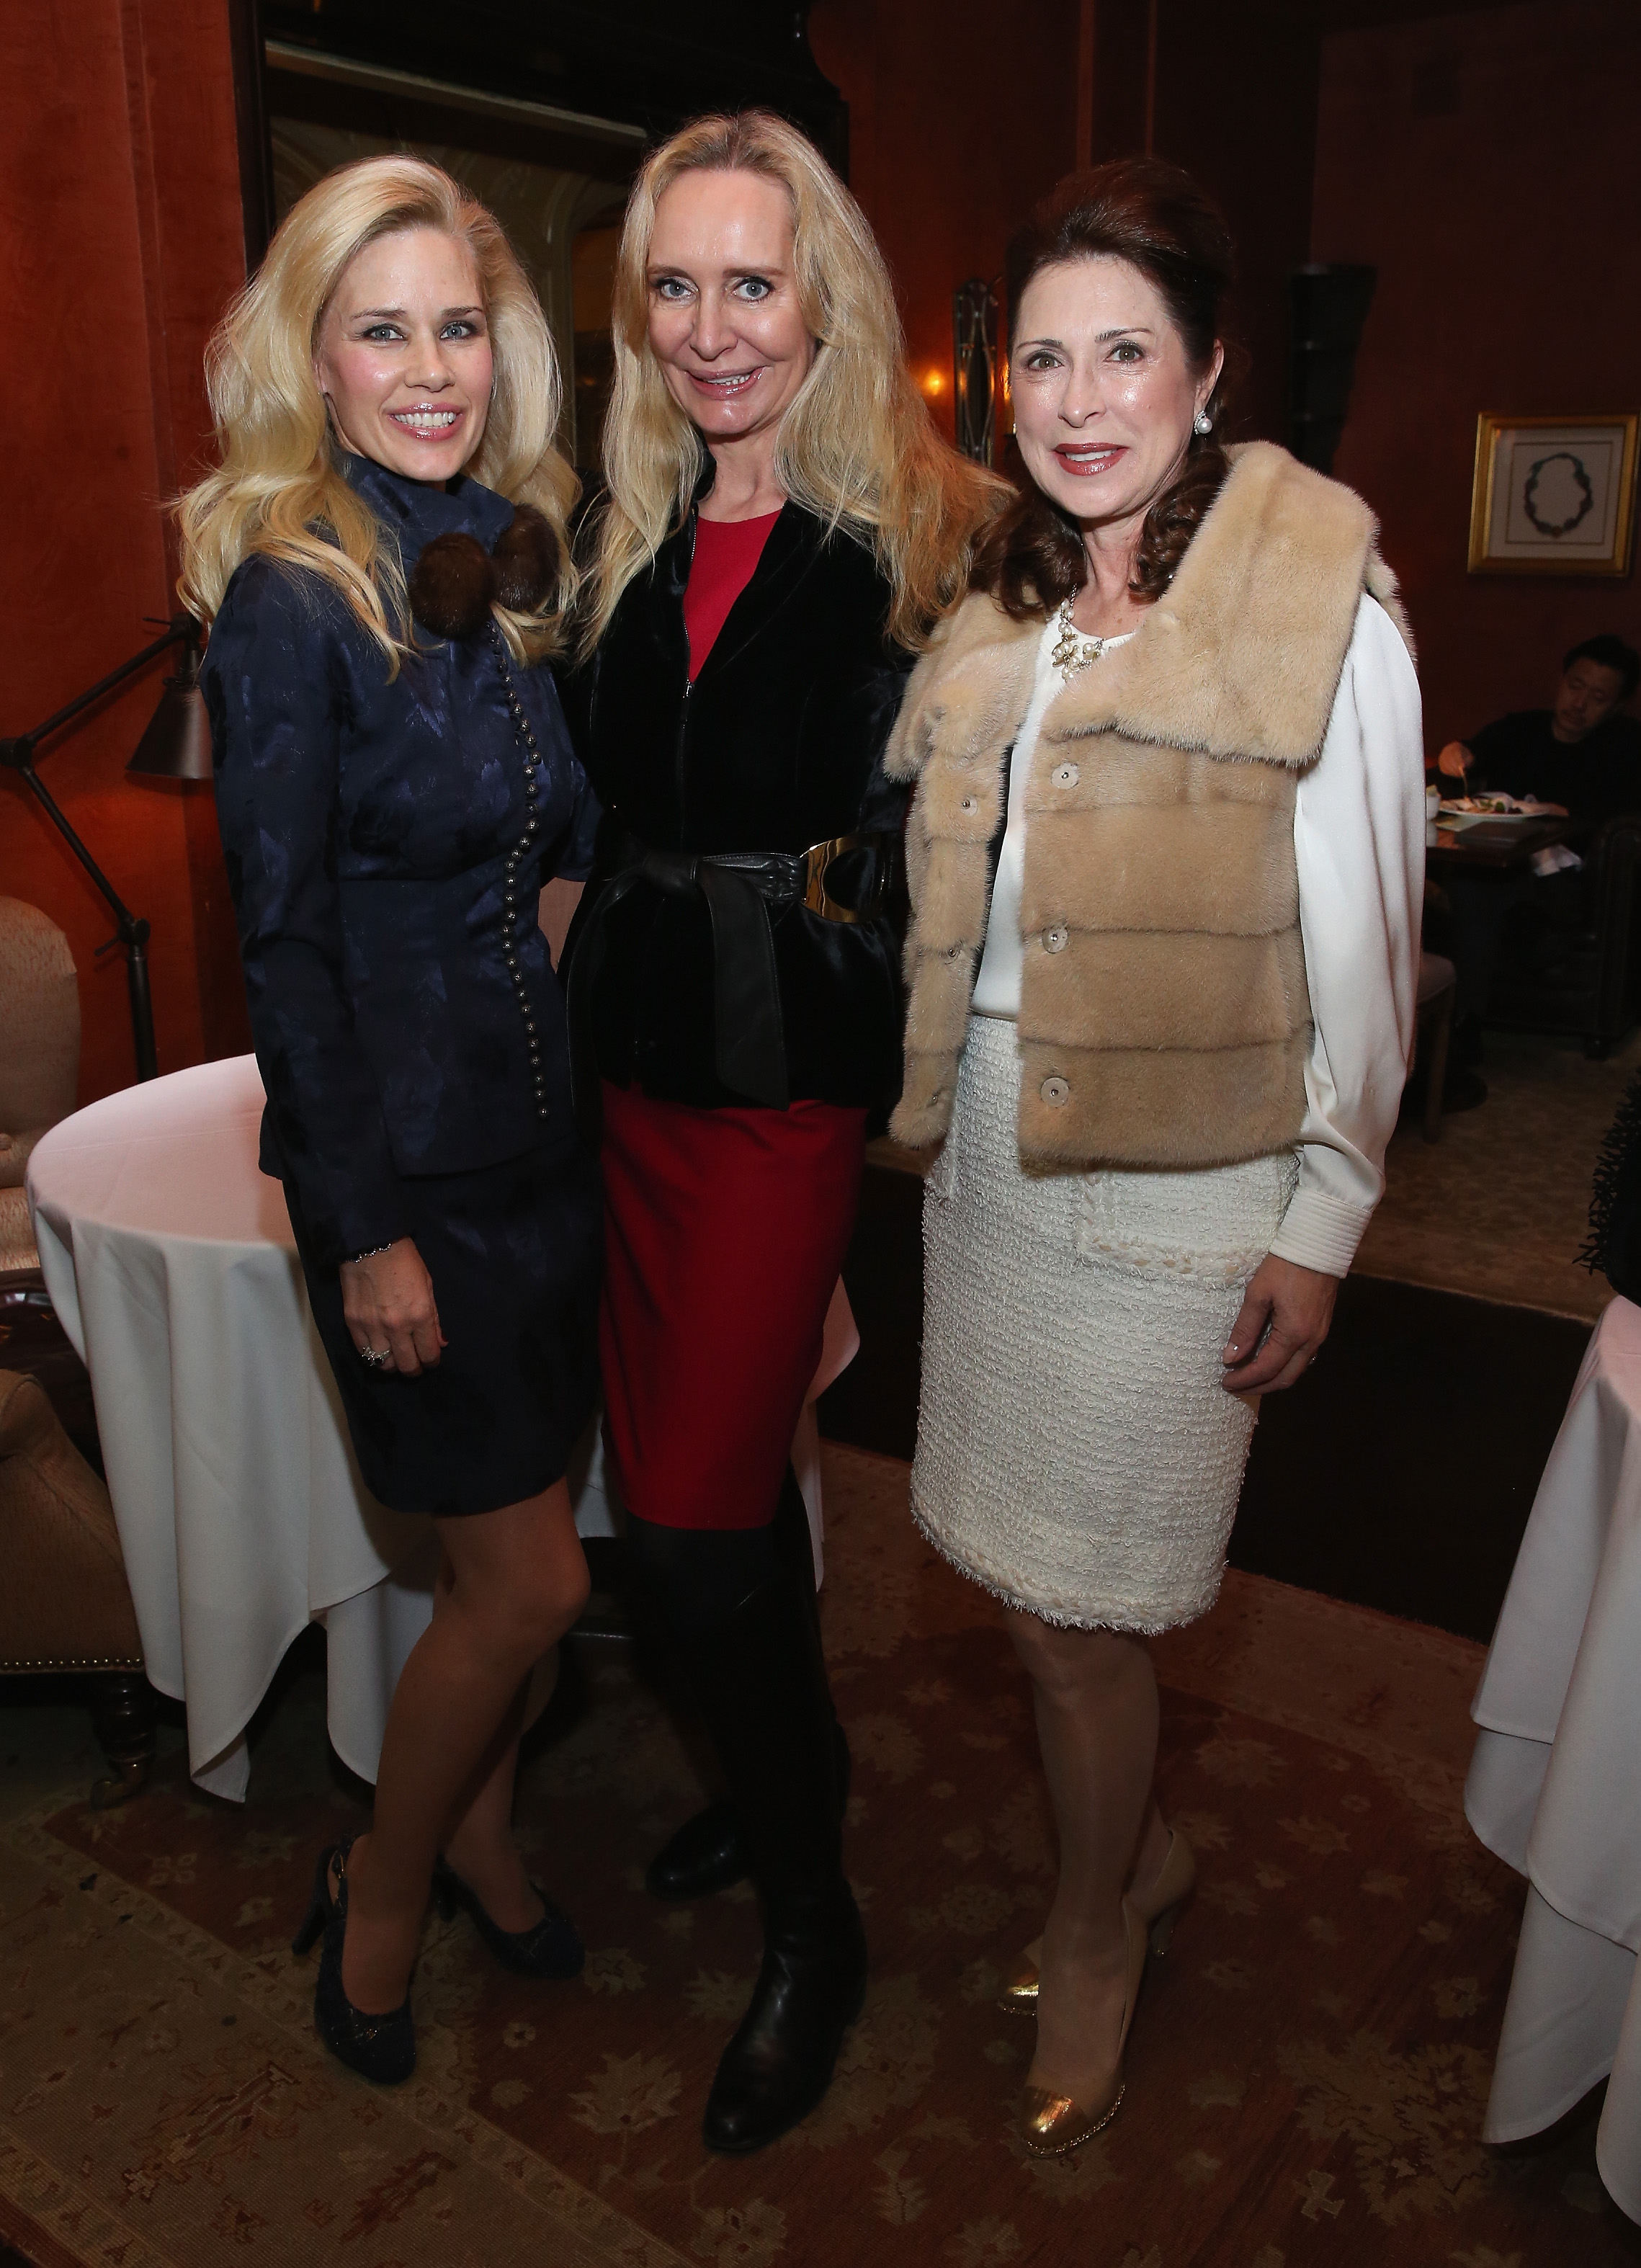 NEW YORK, NY - JANUARY 08: New York Socialite Michelle-Marie Heinemann, Marie-Claire Gladstone and Ann Van Ness attend a Luncheon For Prince Charles Henri Lobkowicz At Plaza Athenee on January 8, 2016 in New York City. (Photo by Robin Marchant/Getty Images for Old Fashioned Mom Magazine)